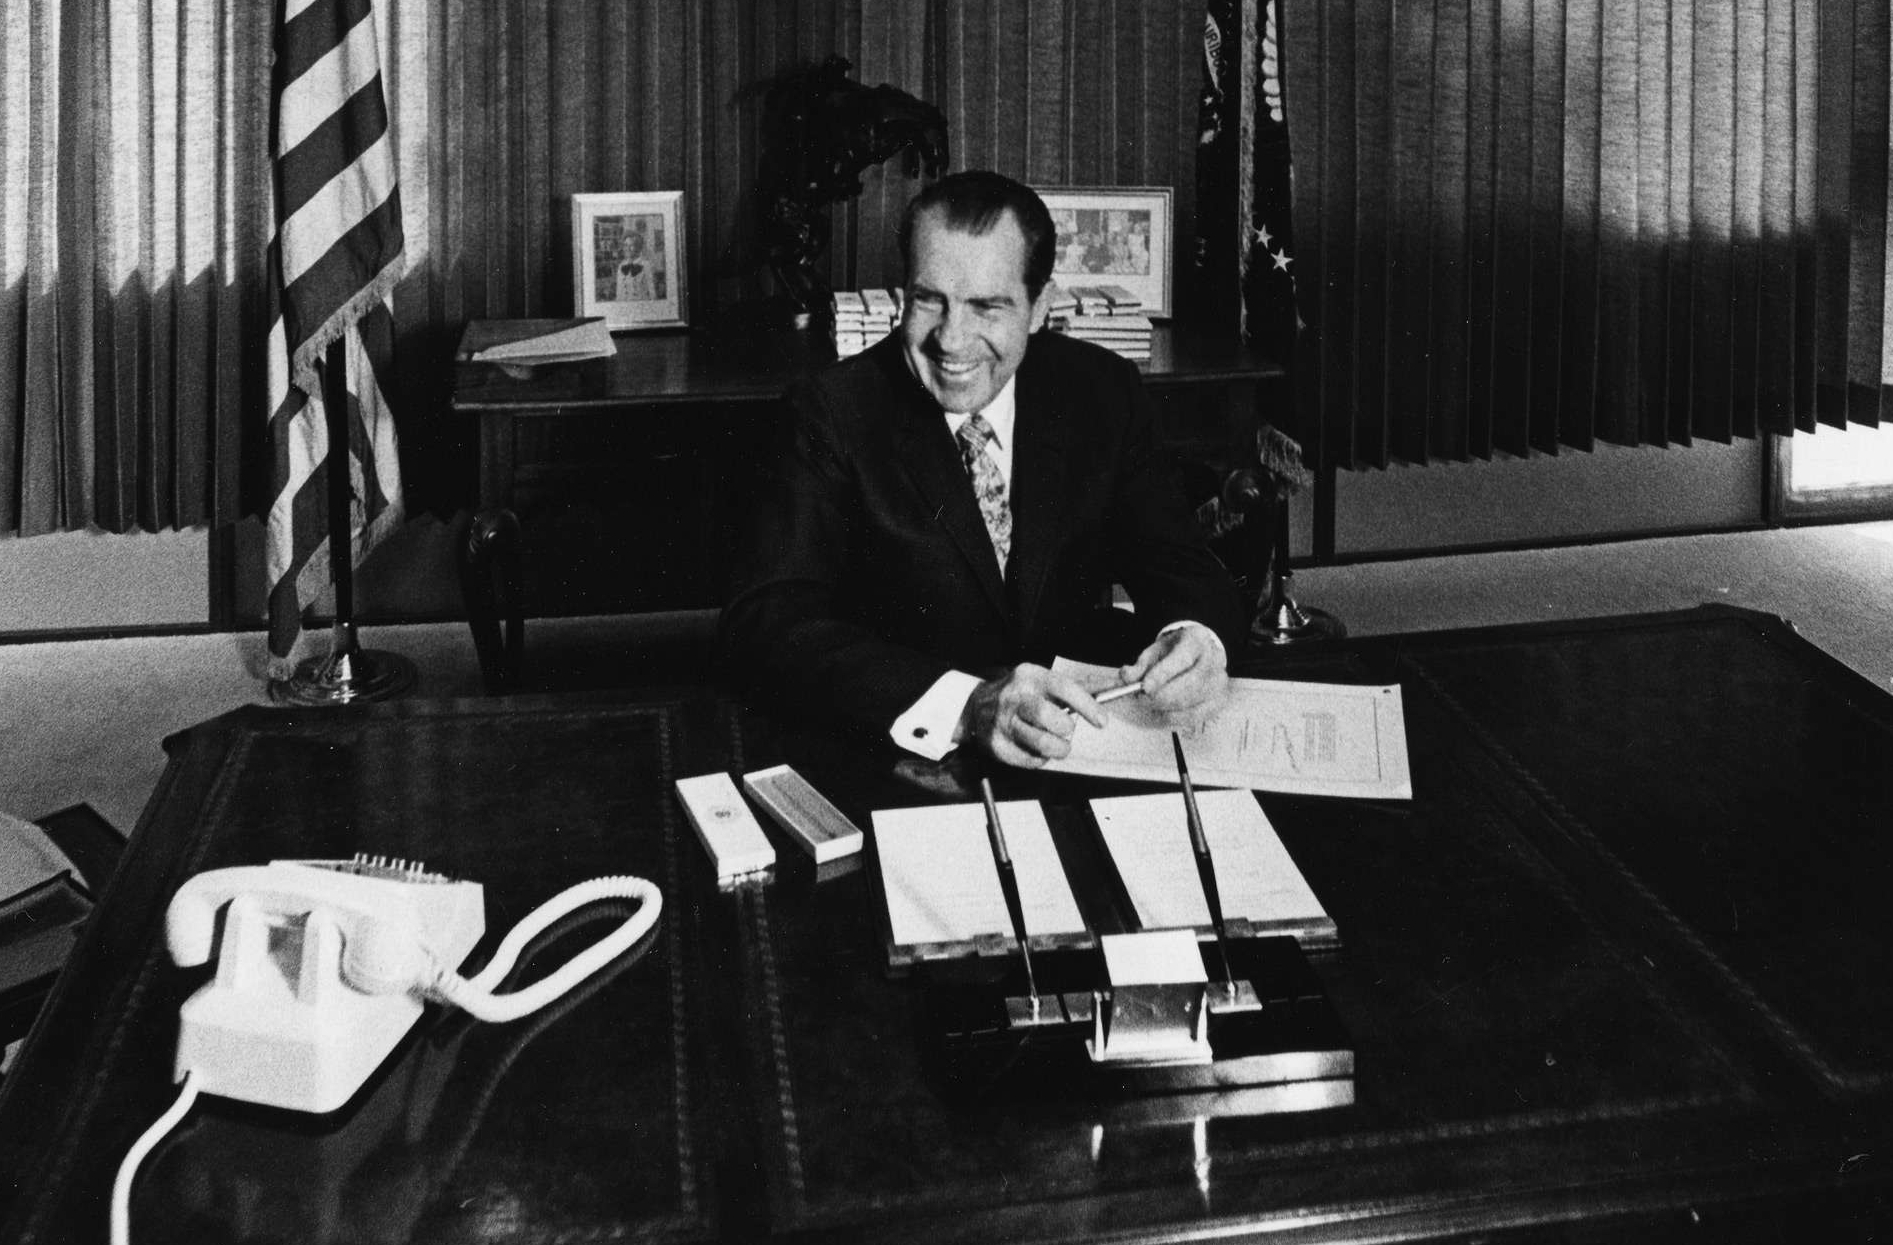 President Nixon Signing the National Environmental Policy Act of 1969